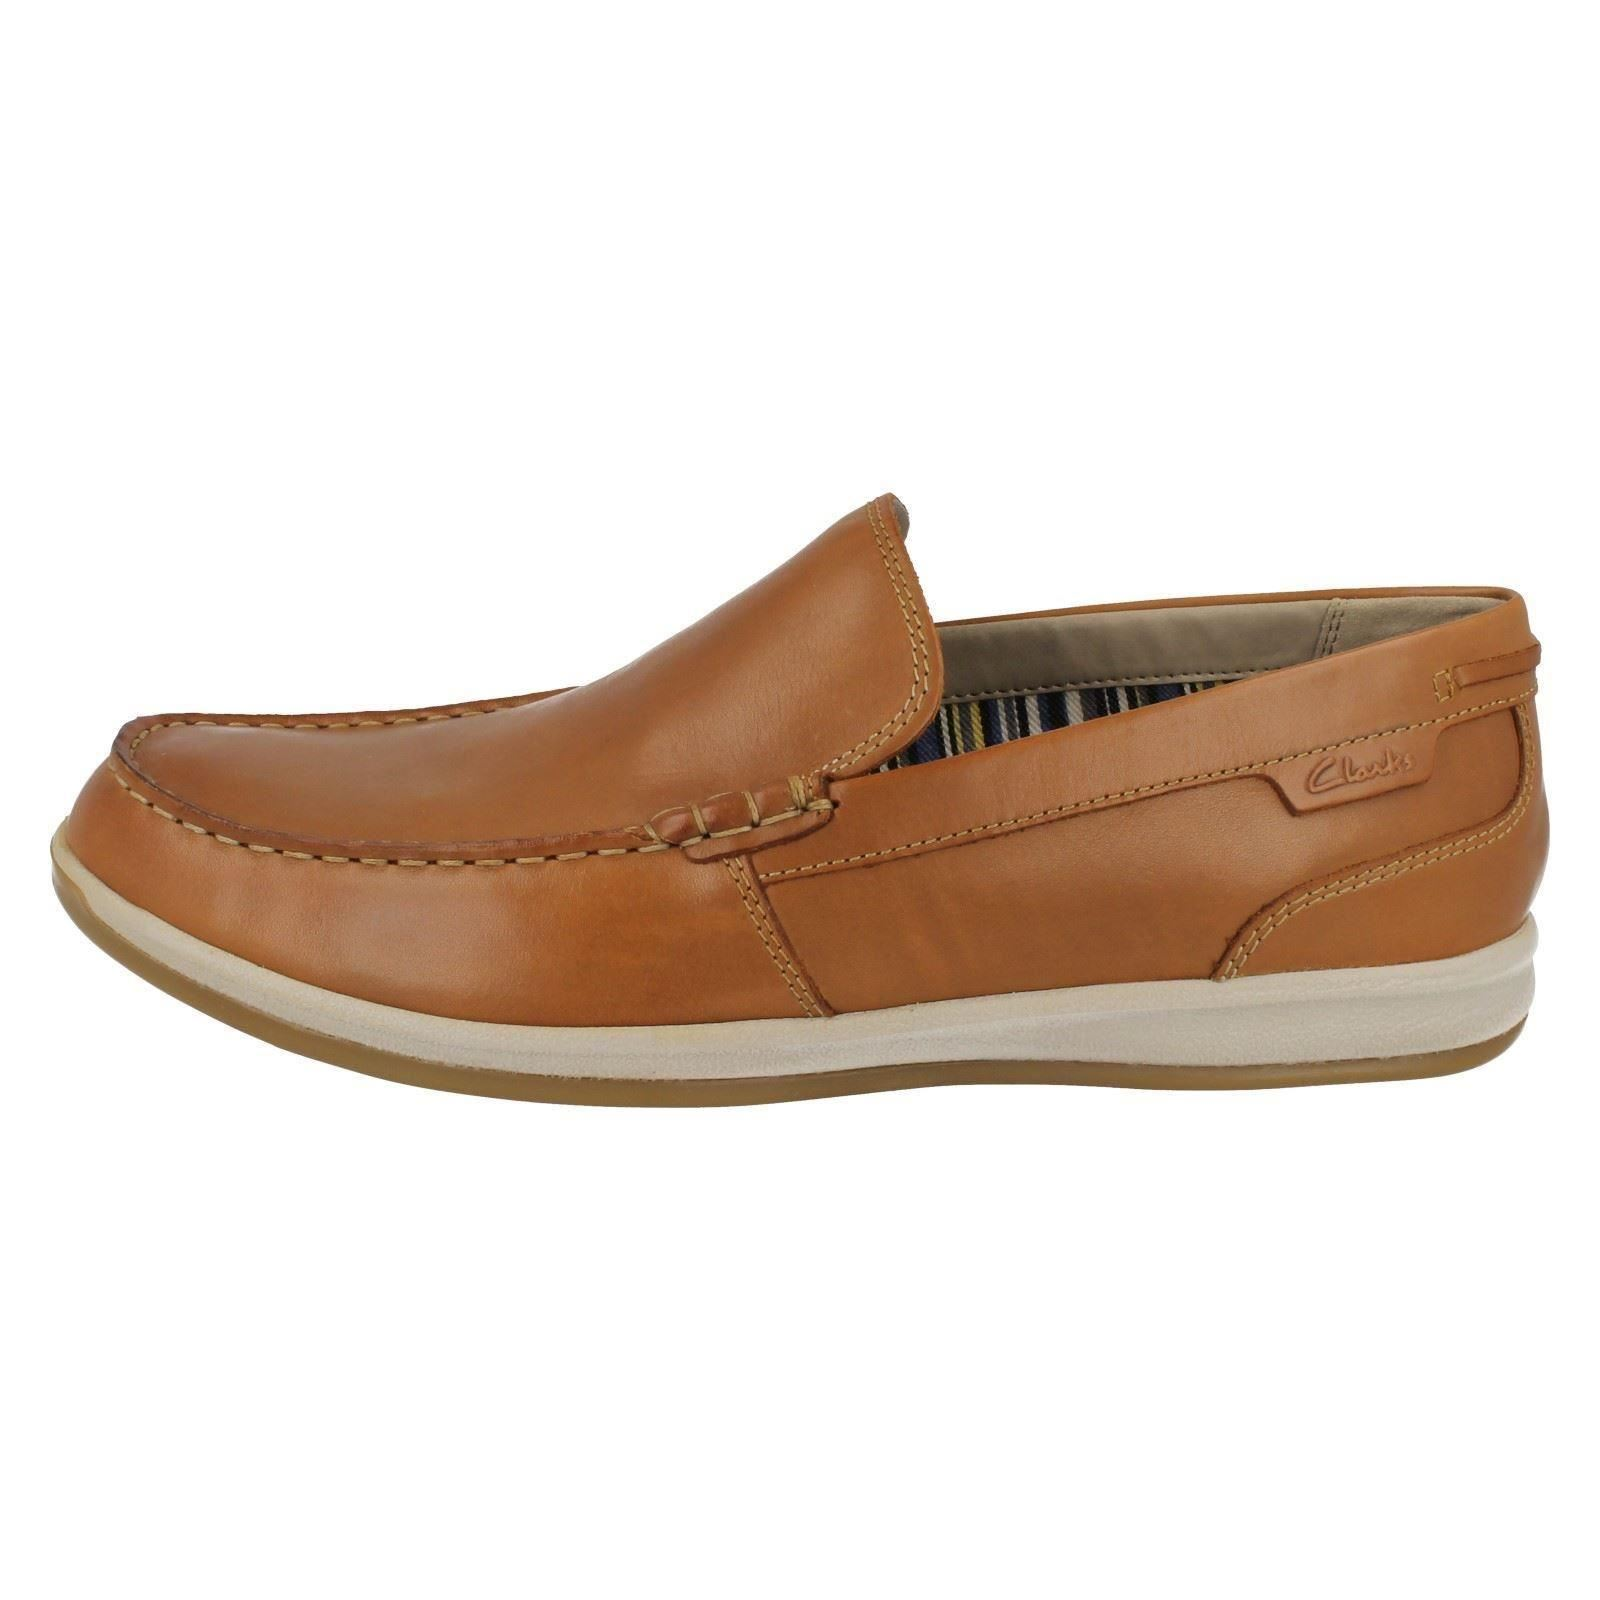 s clarks moccasin style casual shoes the style